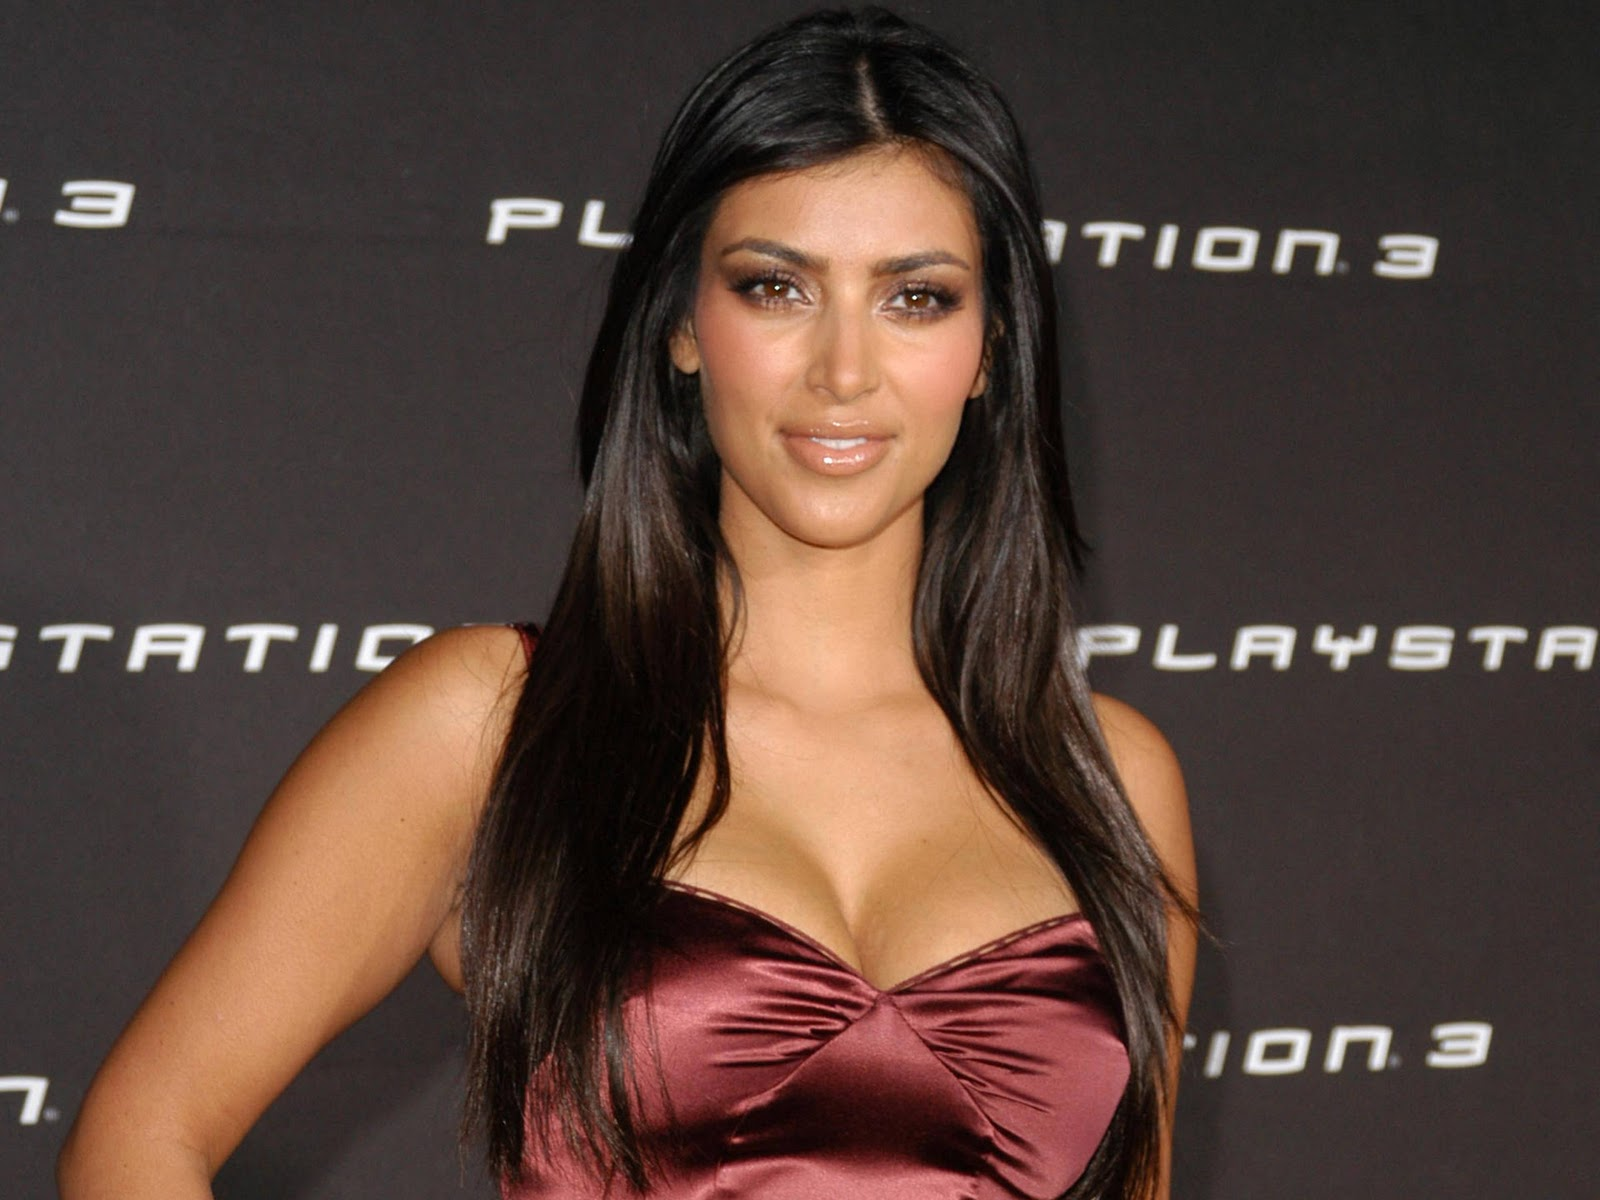 http://2.bp.blogspot.com/-88GhZiz6GQ4/UEjIrfVGhxI/AAAAAAAAOyY/wky83IVGBN4/s1600/The-best-top-desktop-kim-kardashian-wallpapers-kim-kardashian-wallpaper-hd-4.jpg